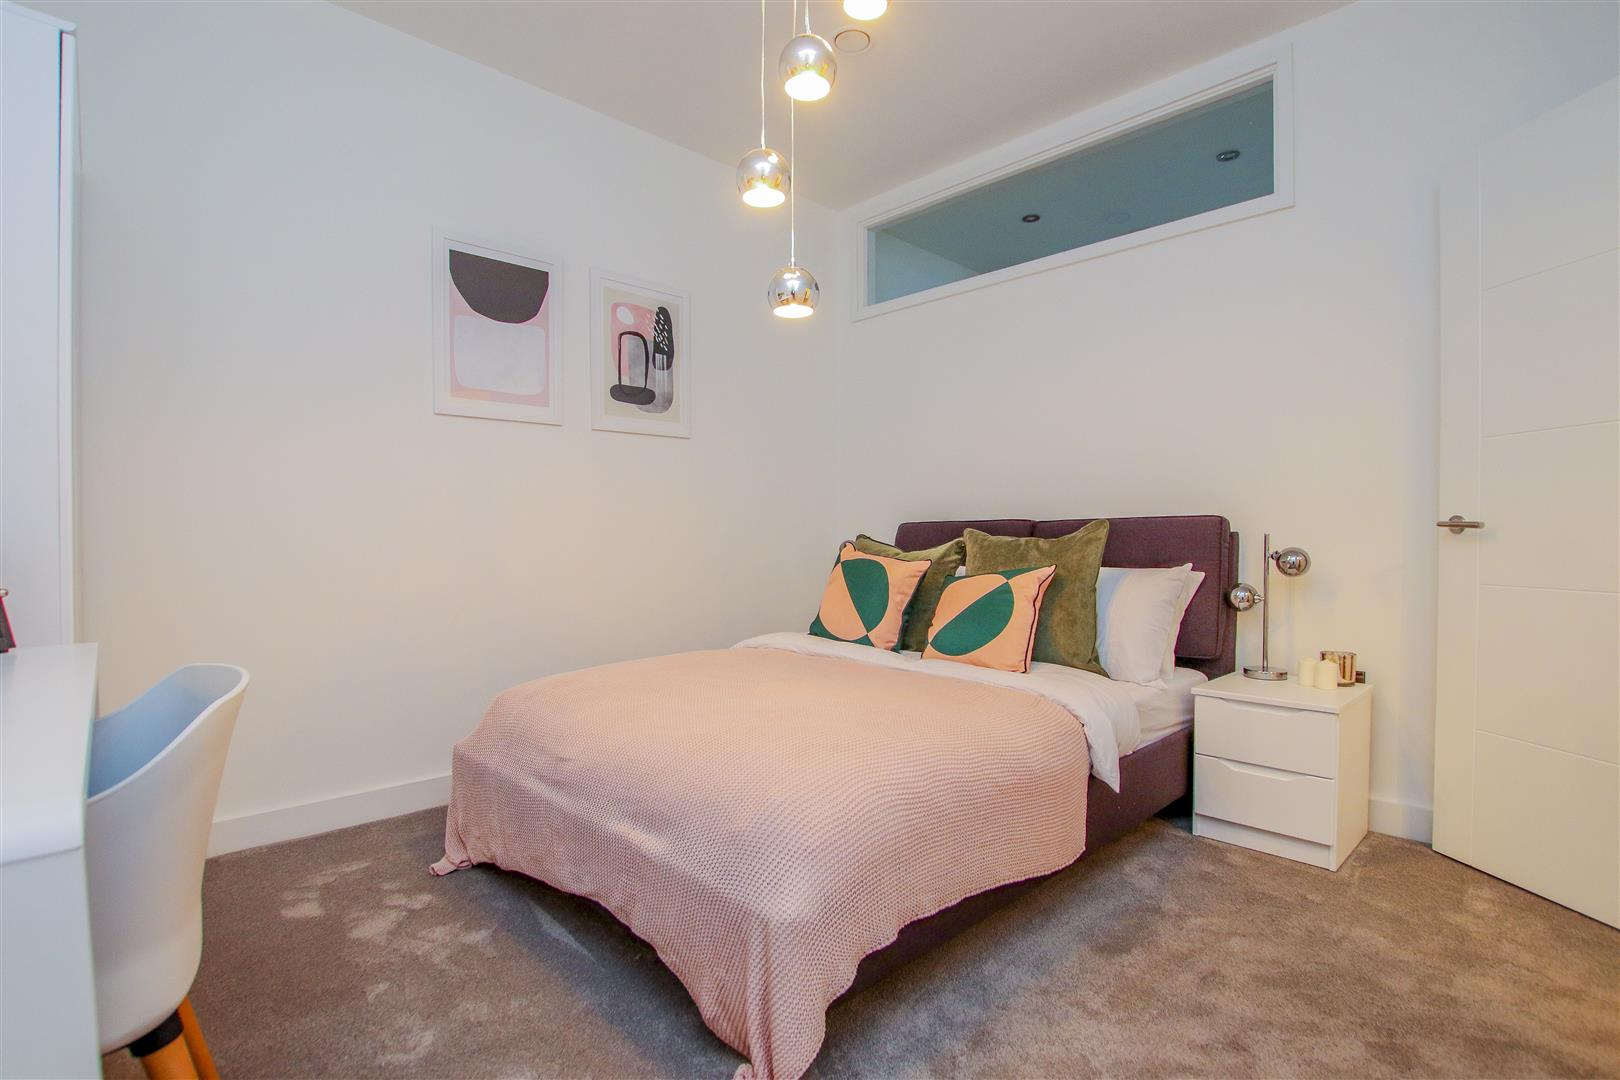 2 Bedroom Apartment For Sale - 15.JPG